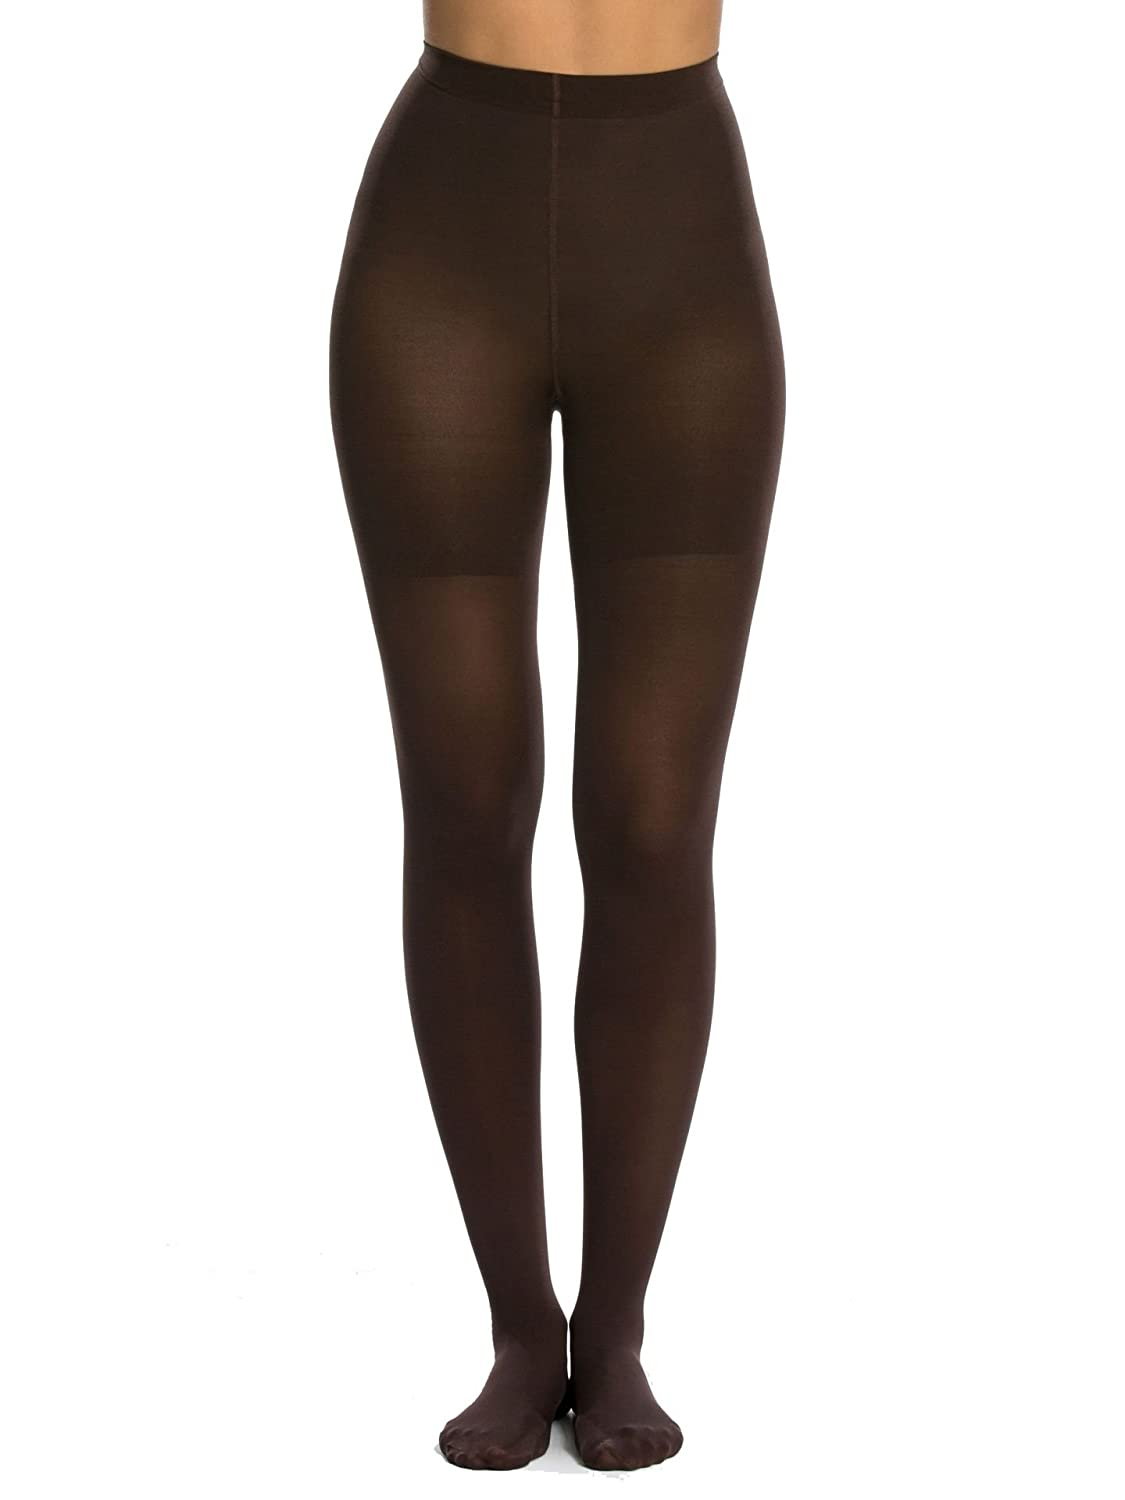 Shimmery nude tights spanx